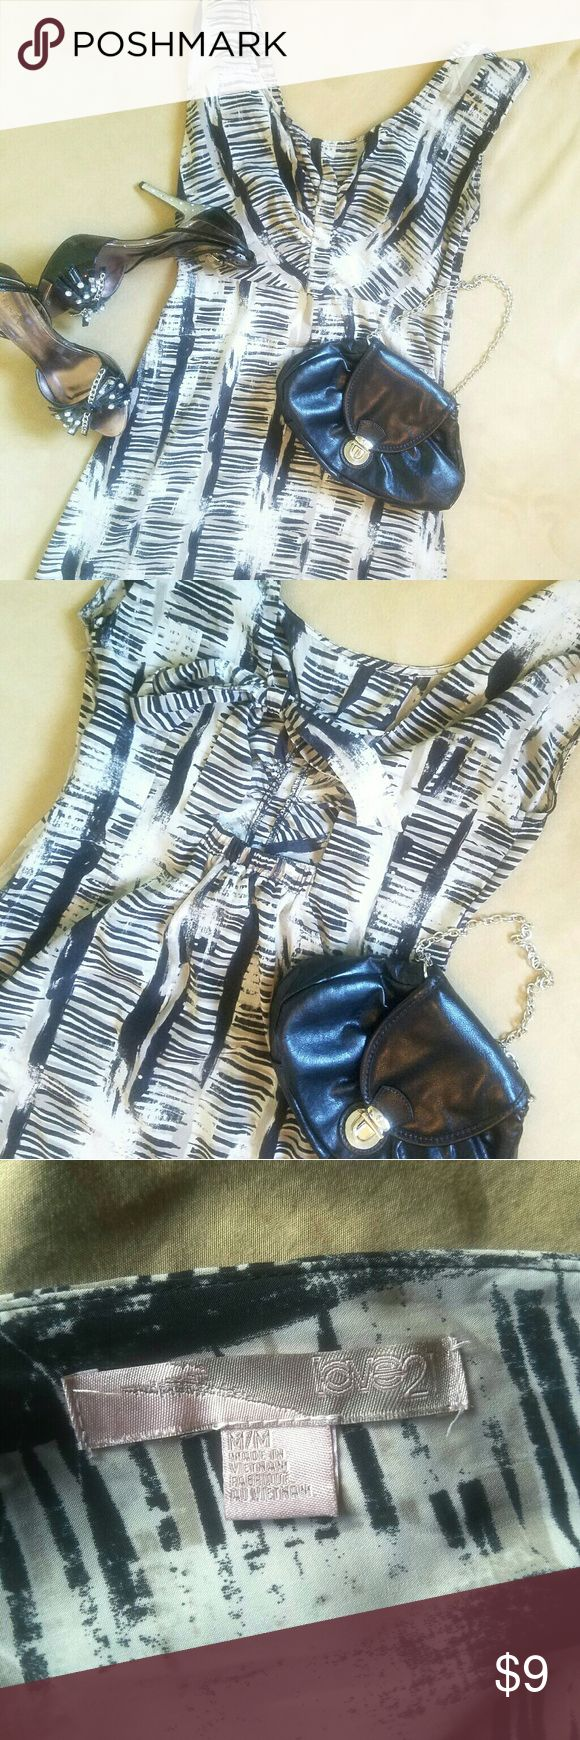 Casual and Cute Summer dress Black and white patterned mini dress with open back and tie. Super cute find and flirty. Wear with heels or thrown on some strappy sandals for a casual look. Size M by Love 21 Forever 21 Dresses Mini